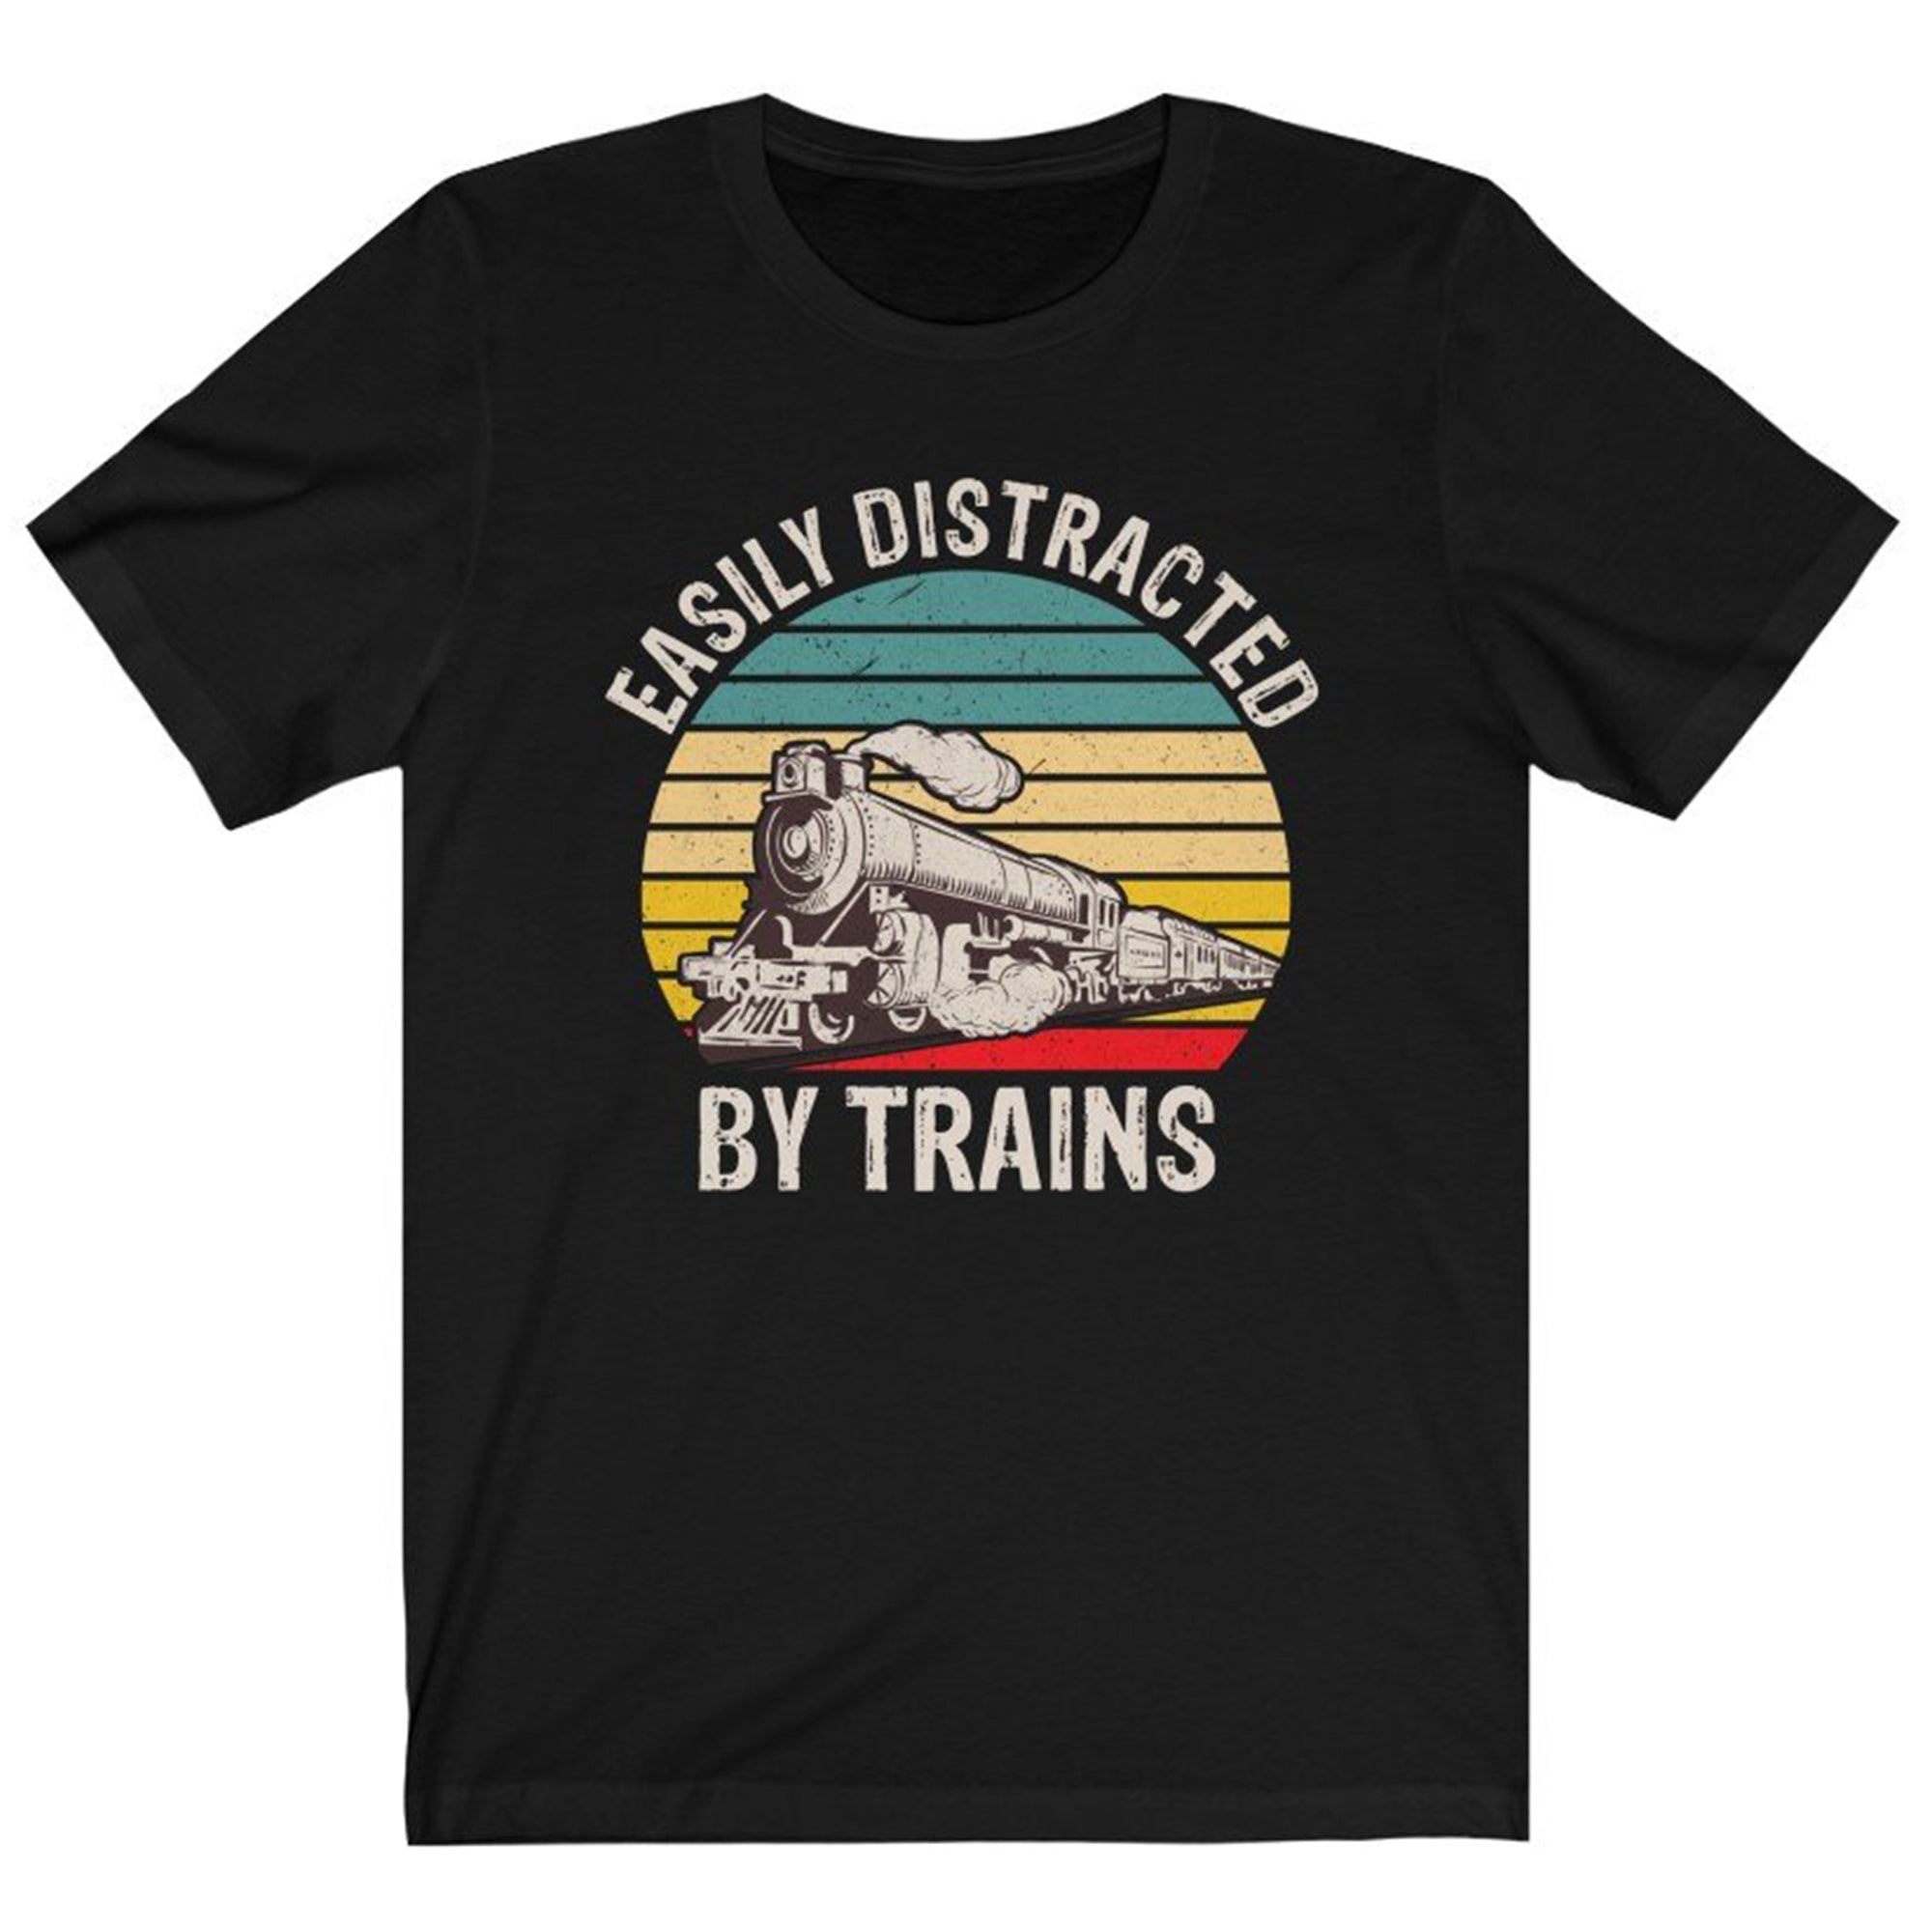 Train Shirt, Easily Distracted By Trains